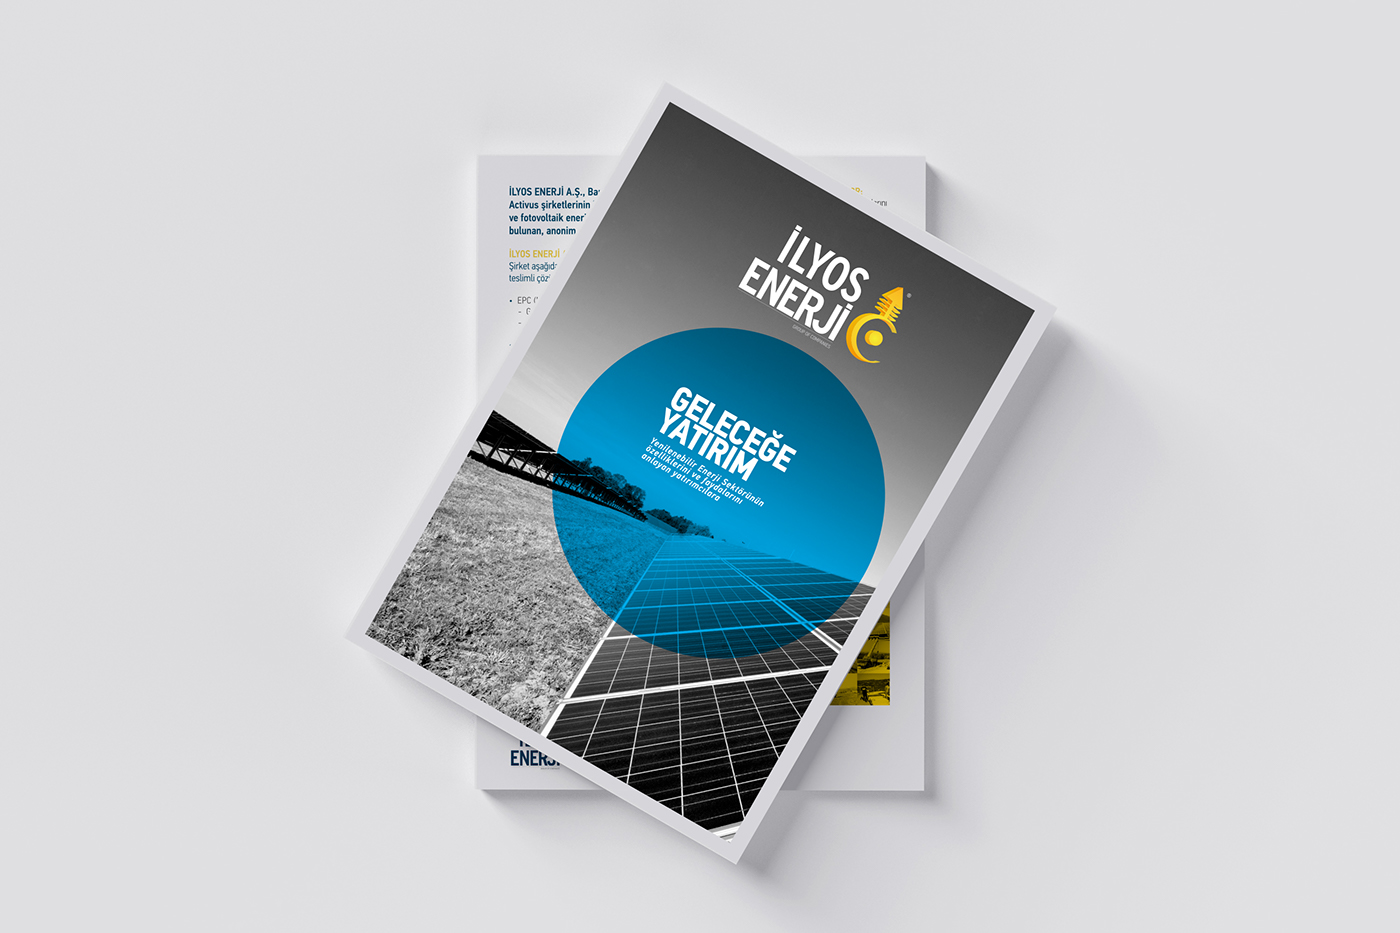 Energy Sector Financial Investment Logo Design visual identity Corporate Material Web Design  exhibition booth design print Turkey